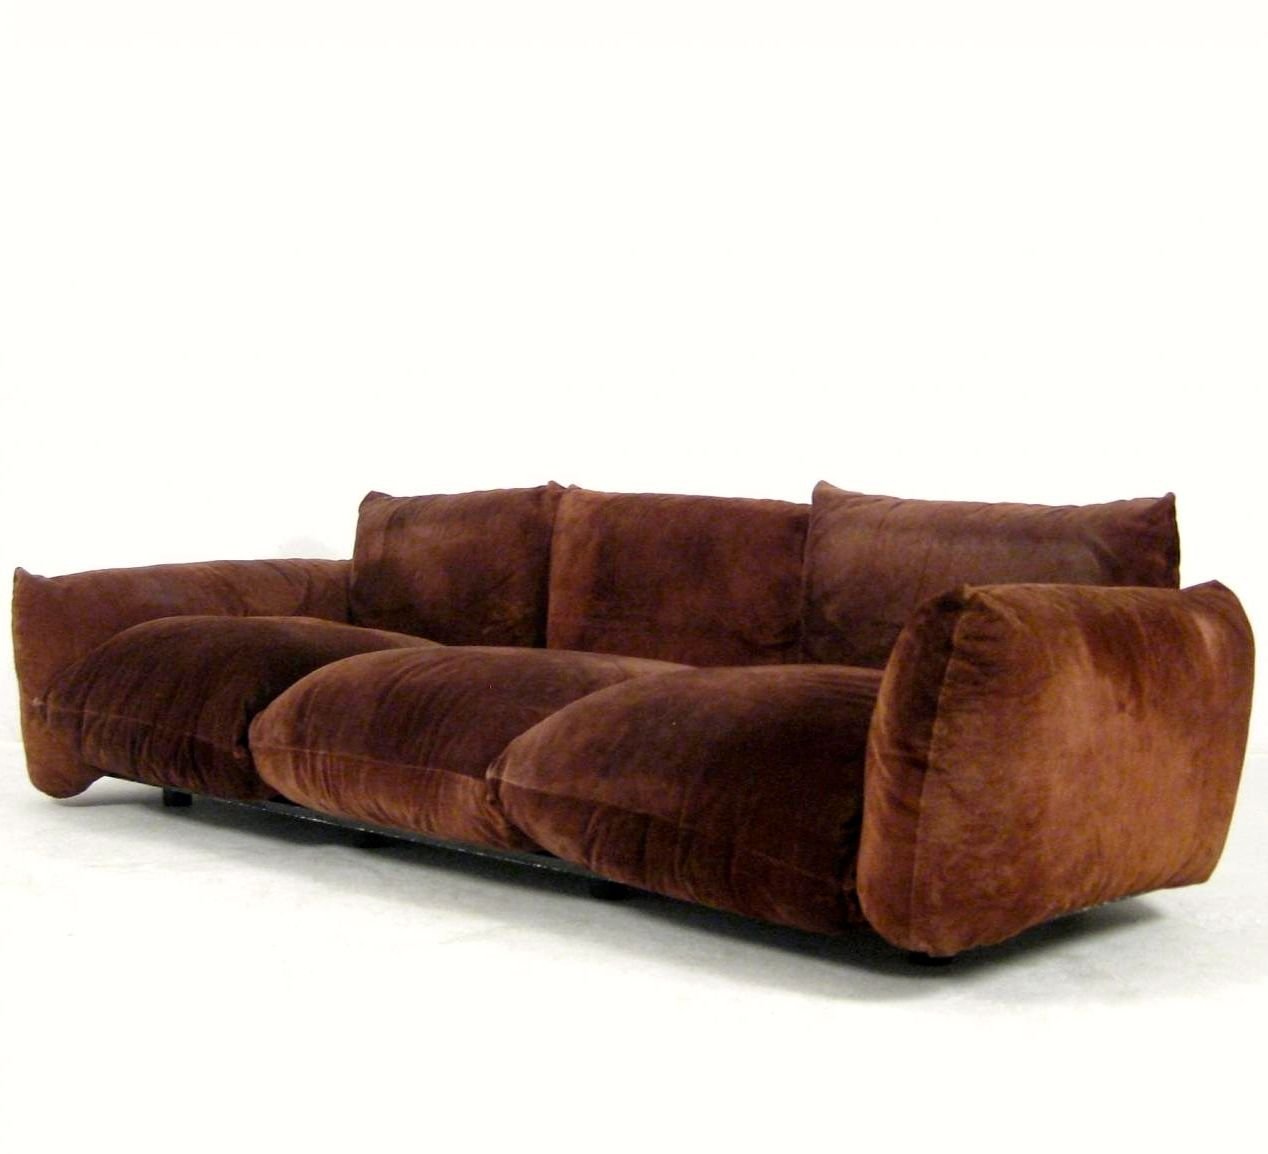 Fulham Sofa Rh Bed In Sale Mario Marenco Suede For Arflex C1970 Couched